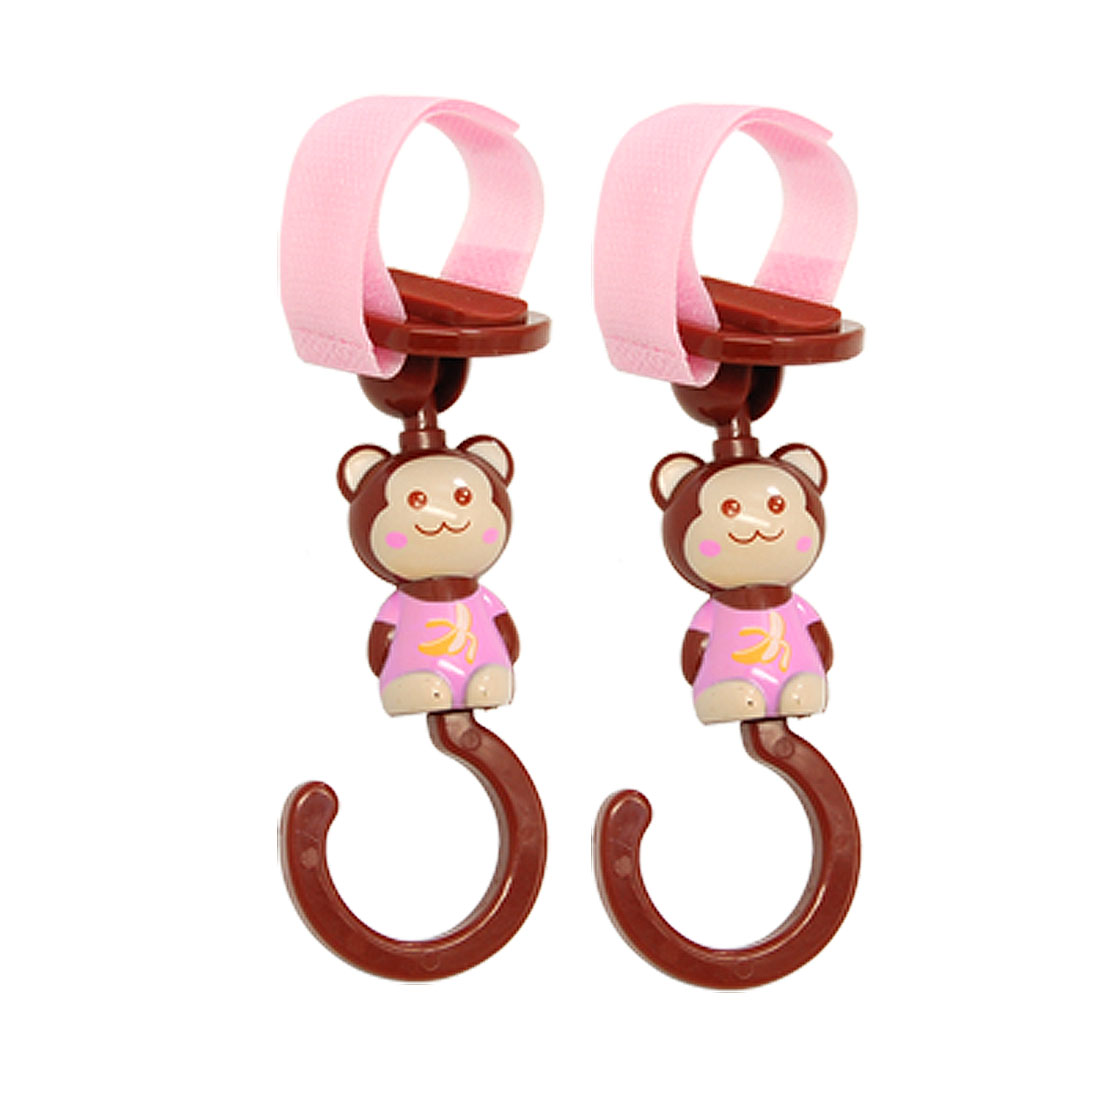 2 PCS Portable Hook and Loop Fastener Strap Cartoon Hanger Clasp Hook